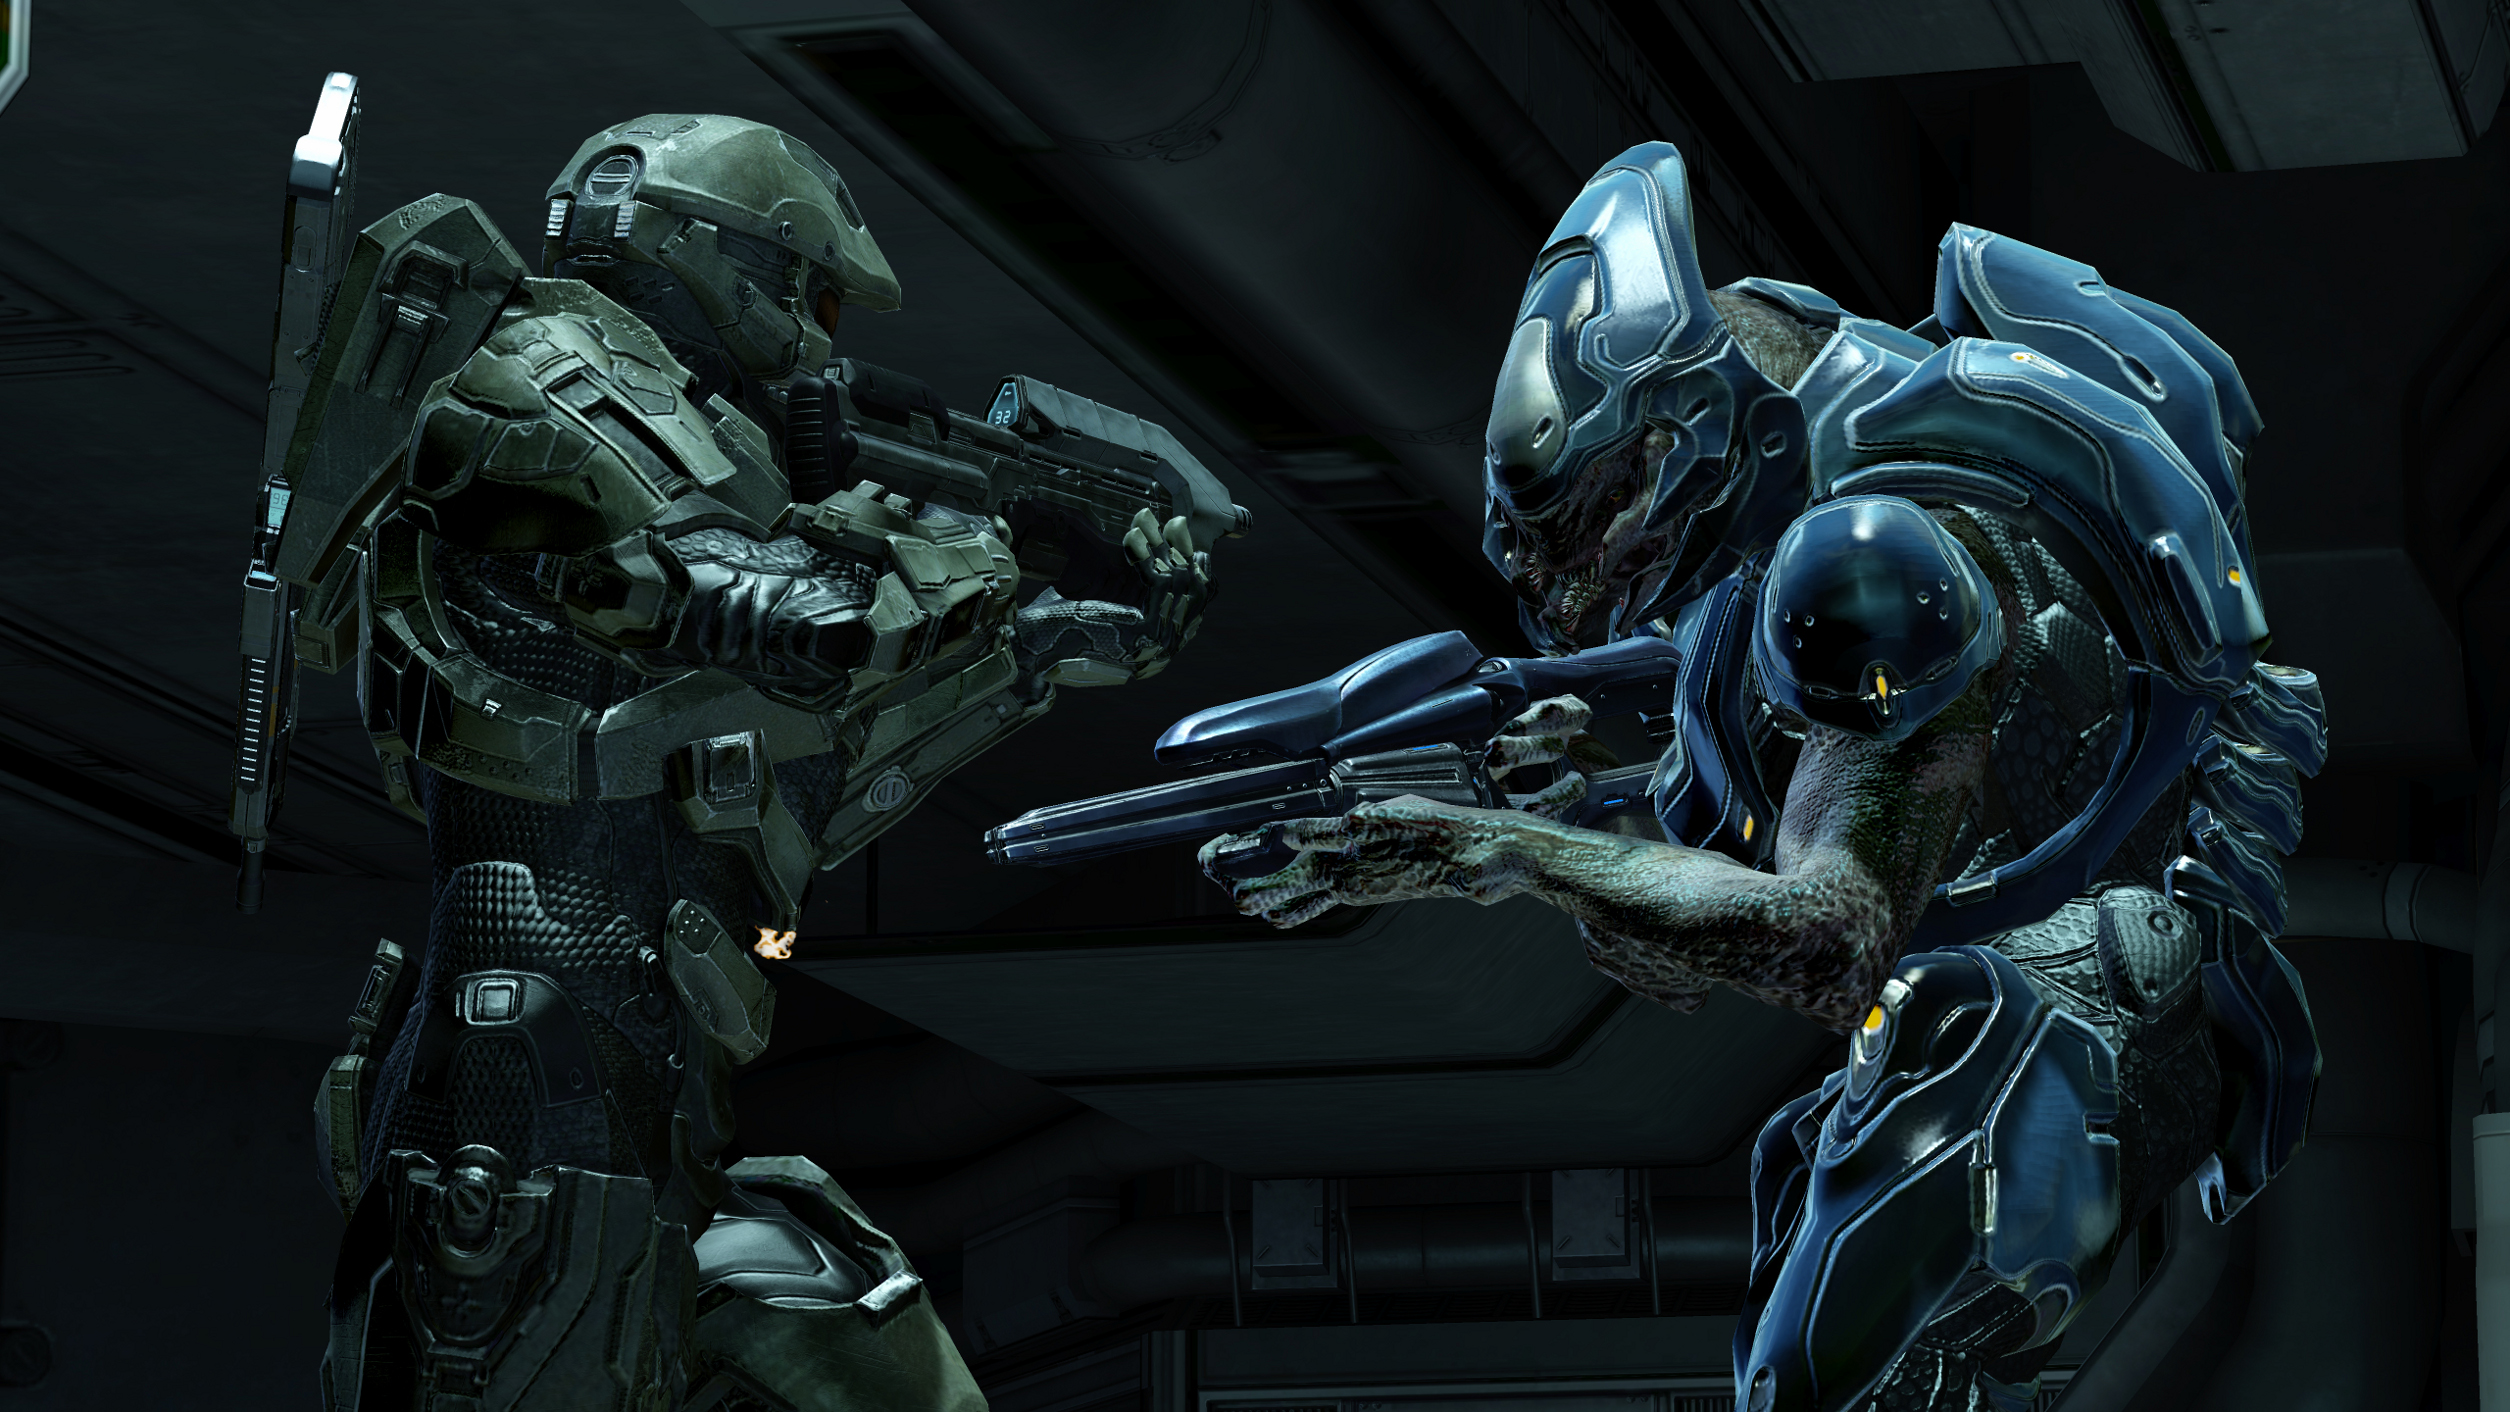 Halo 4 campaign and multiplayer screenshots cheatcodes - Halo 4 photos ...